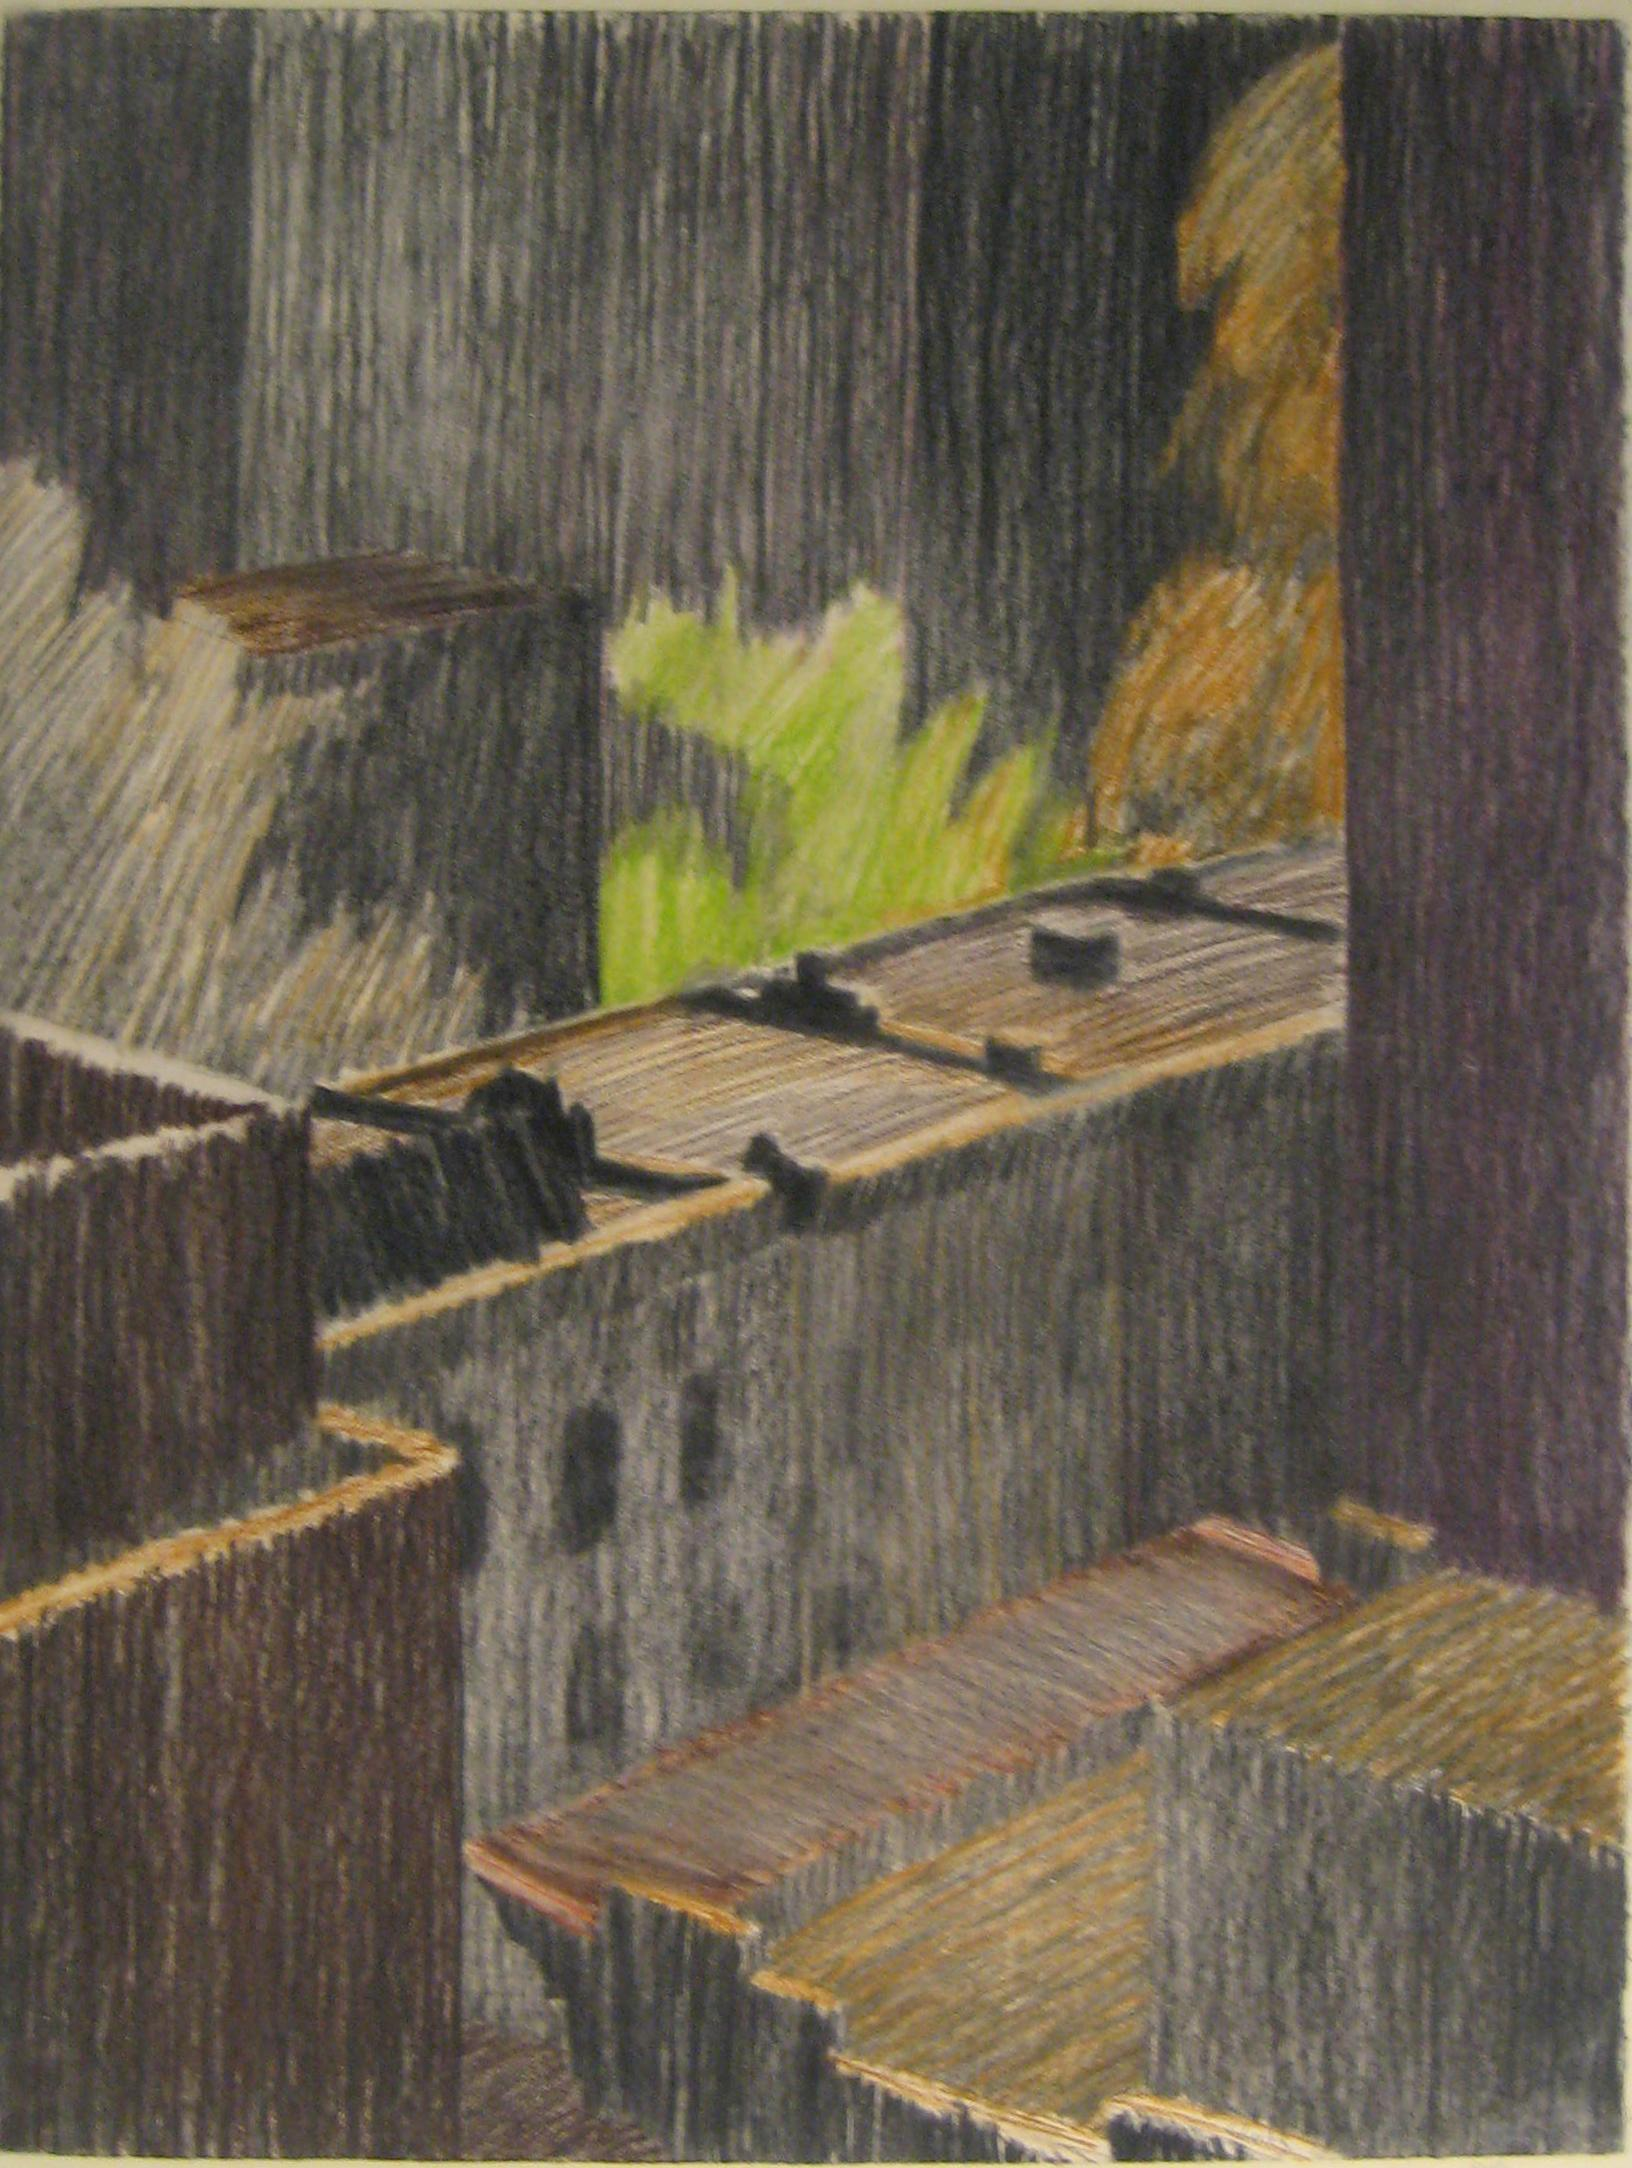 Rooftops (Framed 1970's New York Cityscape Landscape Drawing by William Clutz)